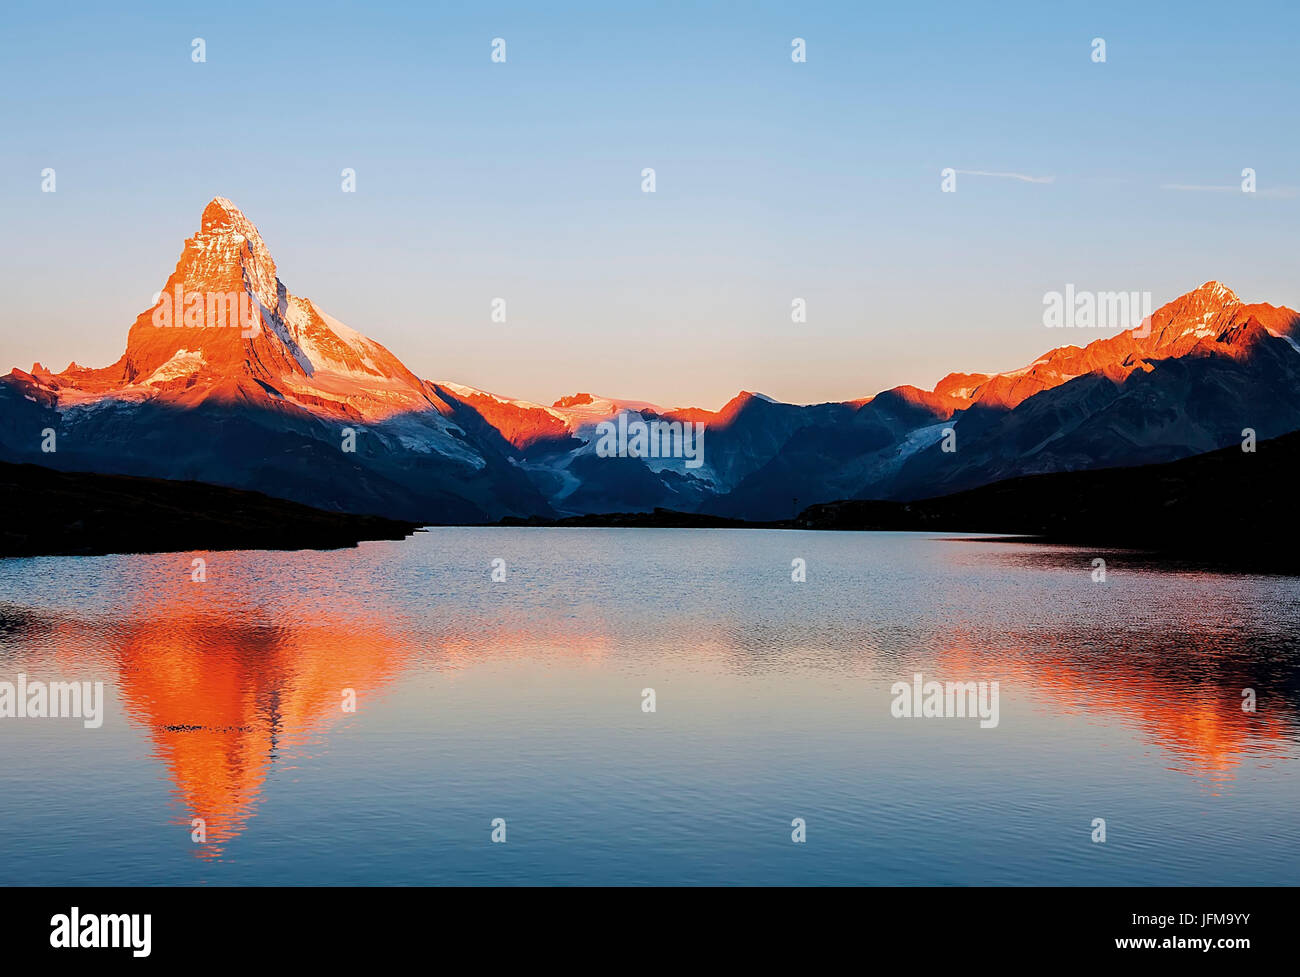 An alpine lake reflecting the Matterhorn and other peaks in the sunrise's colours, Valais, Swiss alps - Stock Image